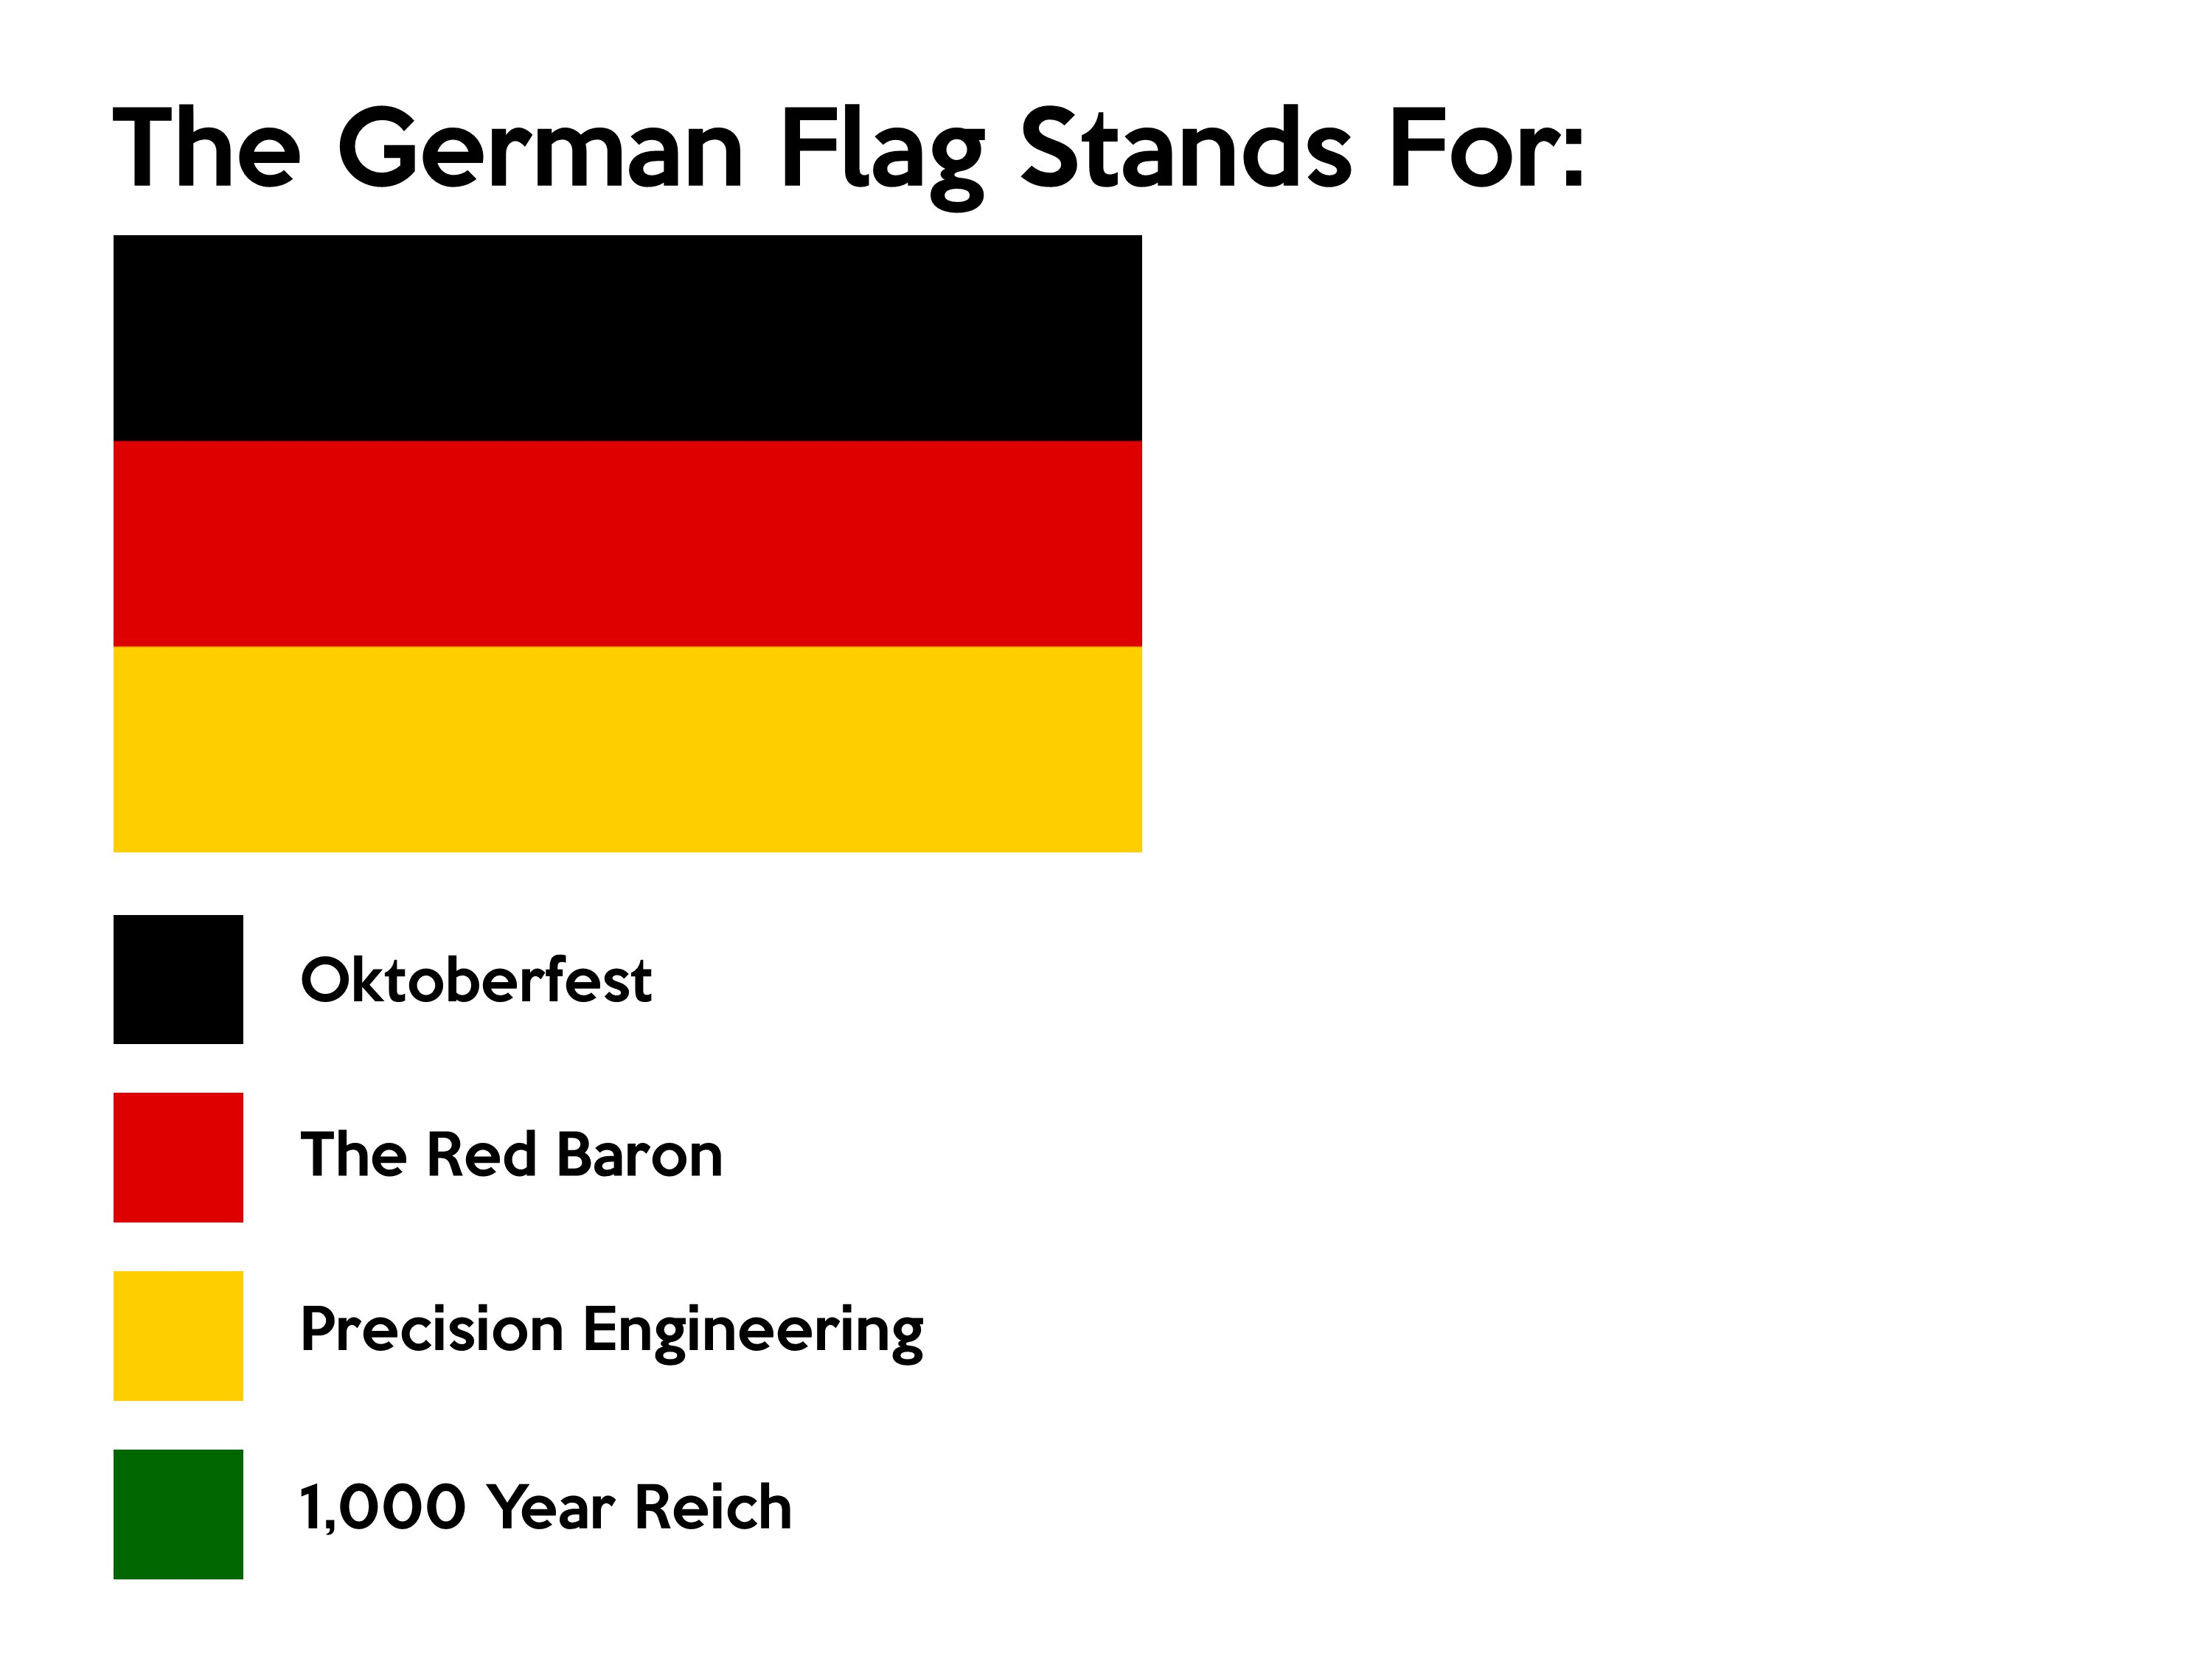 The German Flag Stands For